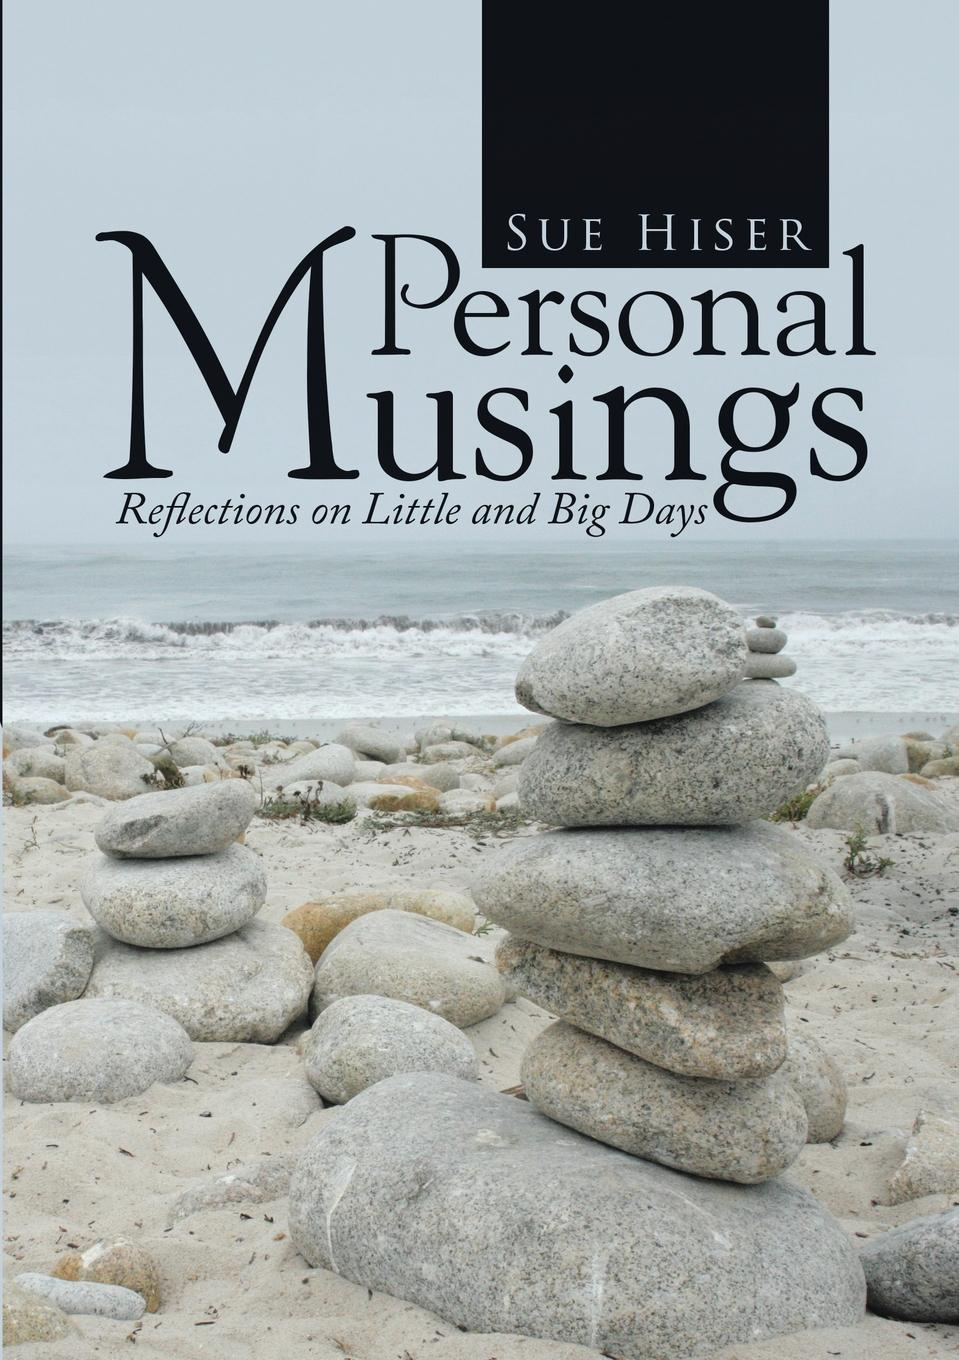 Sue Hiser Personal Musings. Reflections on Little and Big Days m steven piver gilda s disease sharing personal experiences and a medical perspective on ovarian cancer